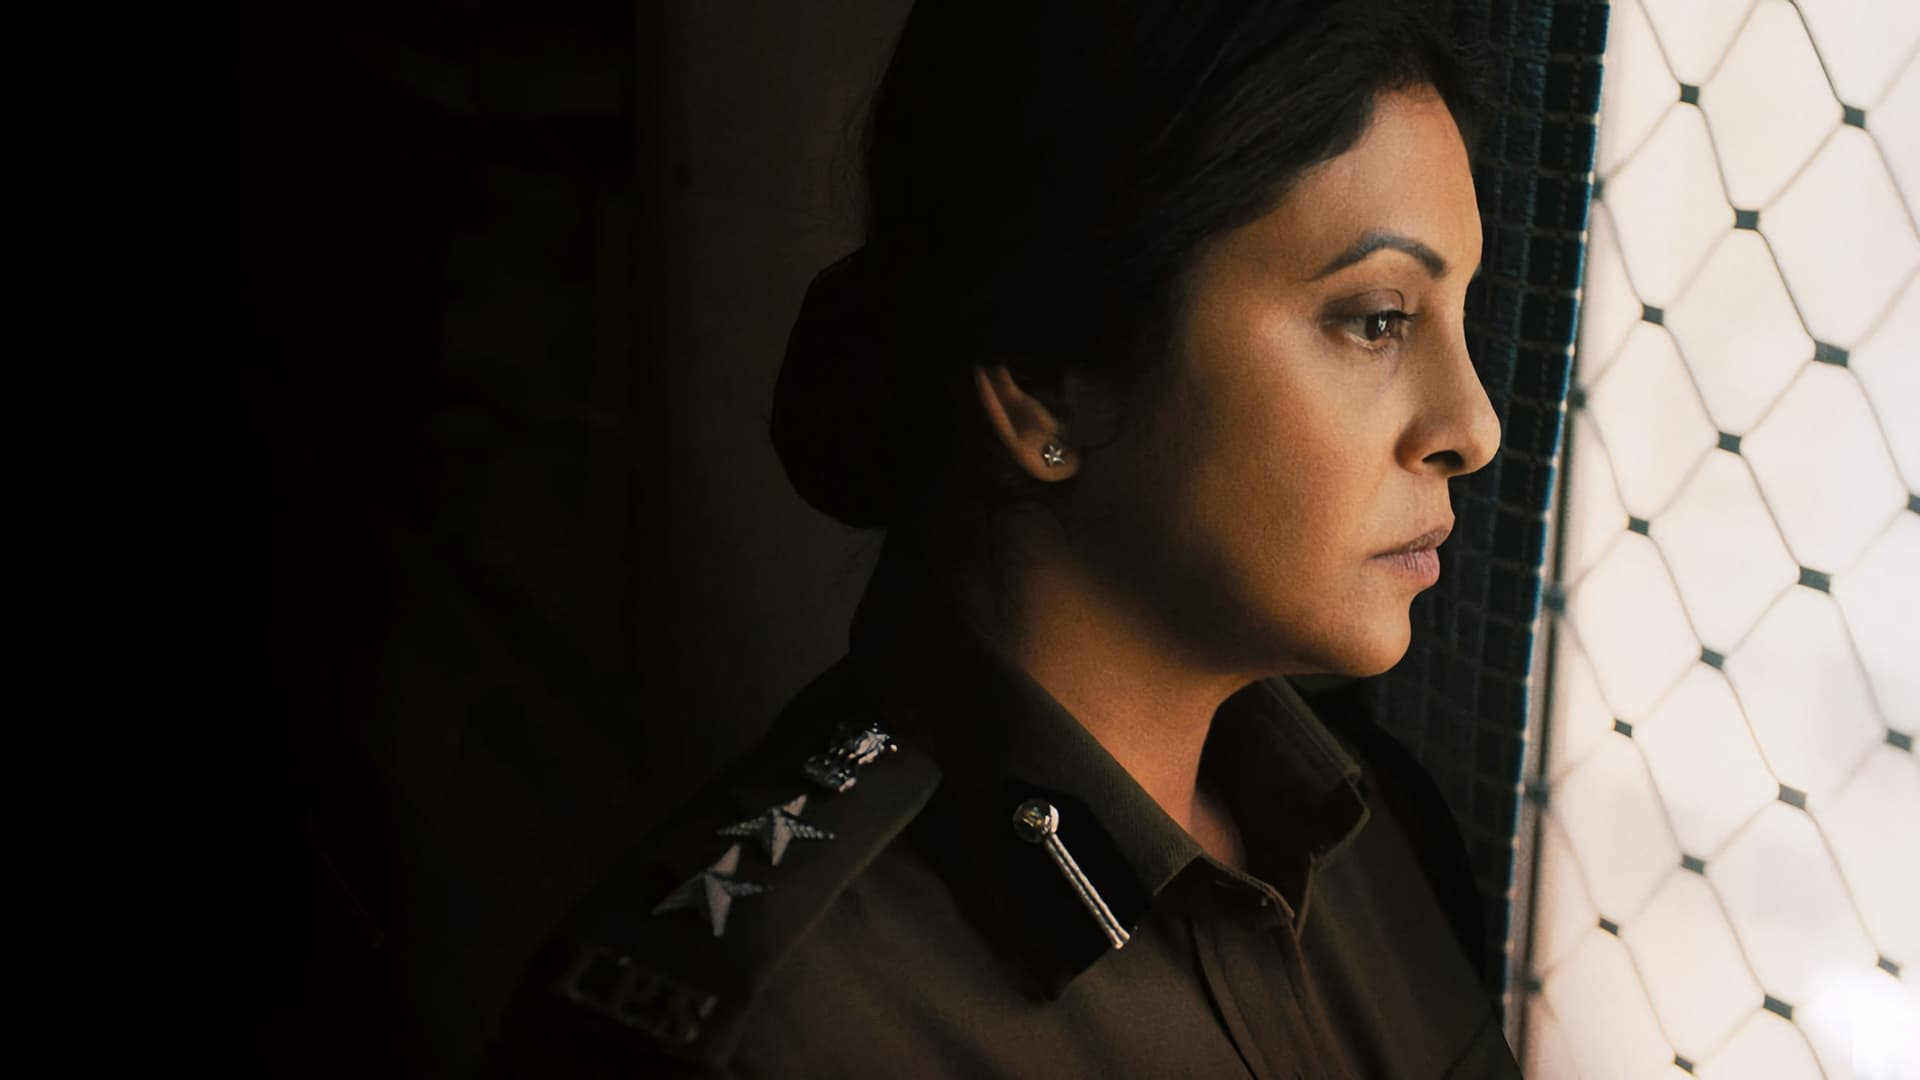 As Delhi reels in the aftermath of a gang rape, DCP Vartika Chaturvedi leads a painstaking search for the culprits. Based on the 2012 Nirbhaya case.Anthology series.